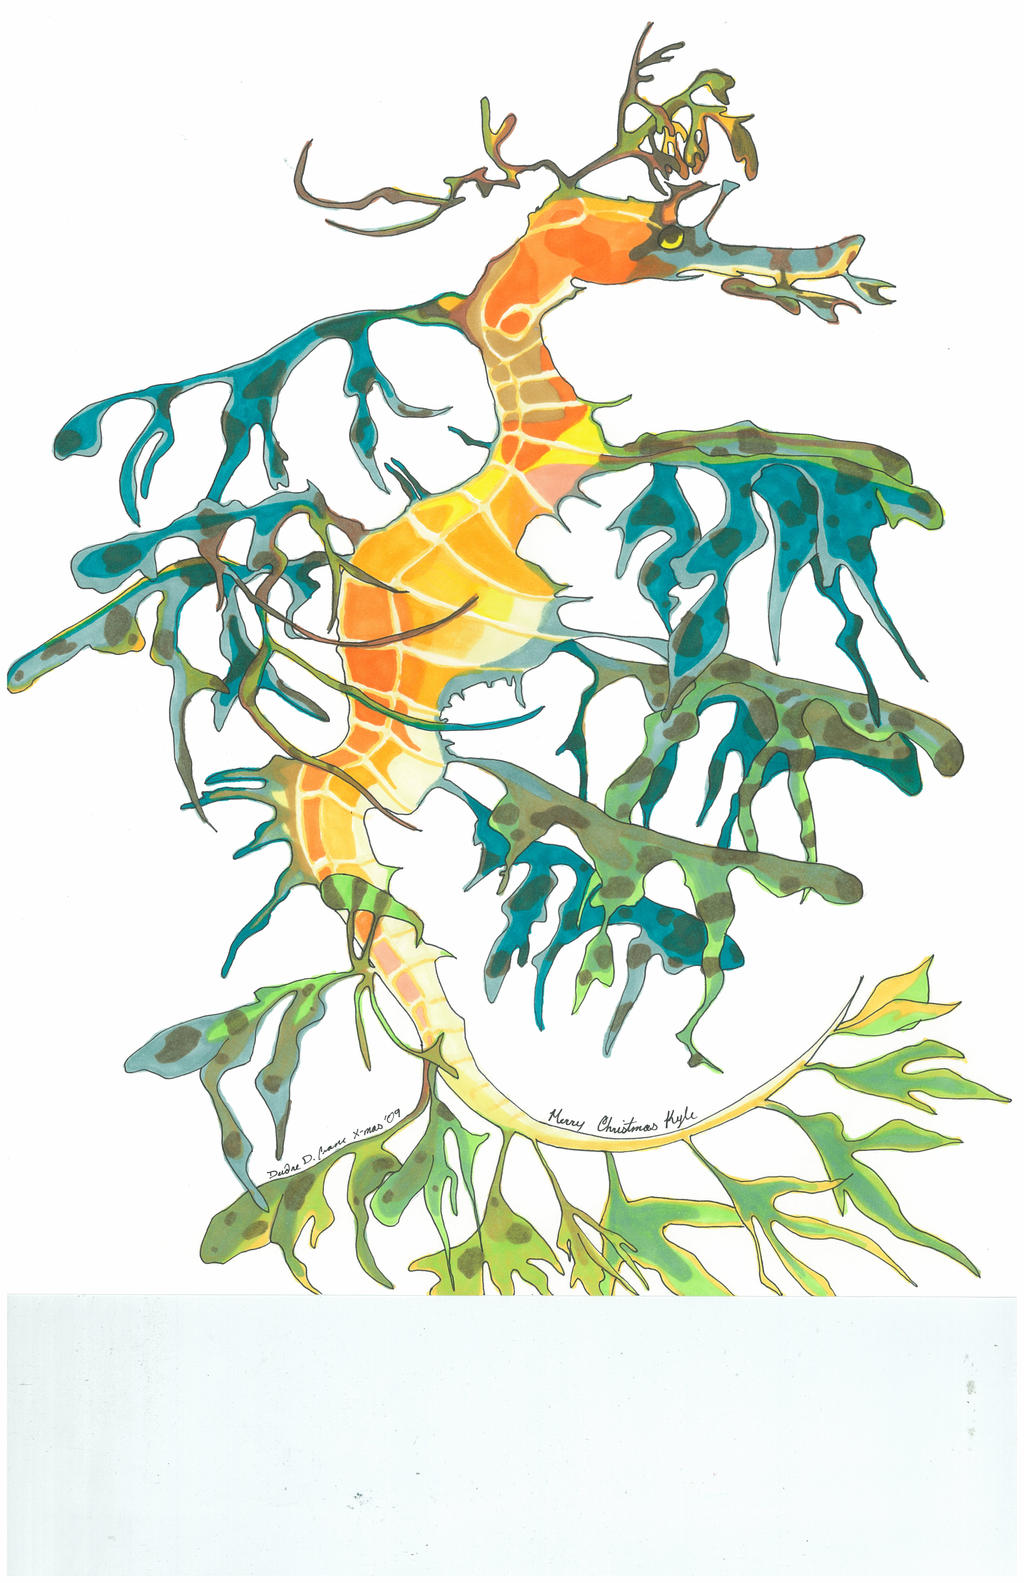 Leafy Seadragon by blufyrdragon4 on DeviantArt